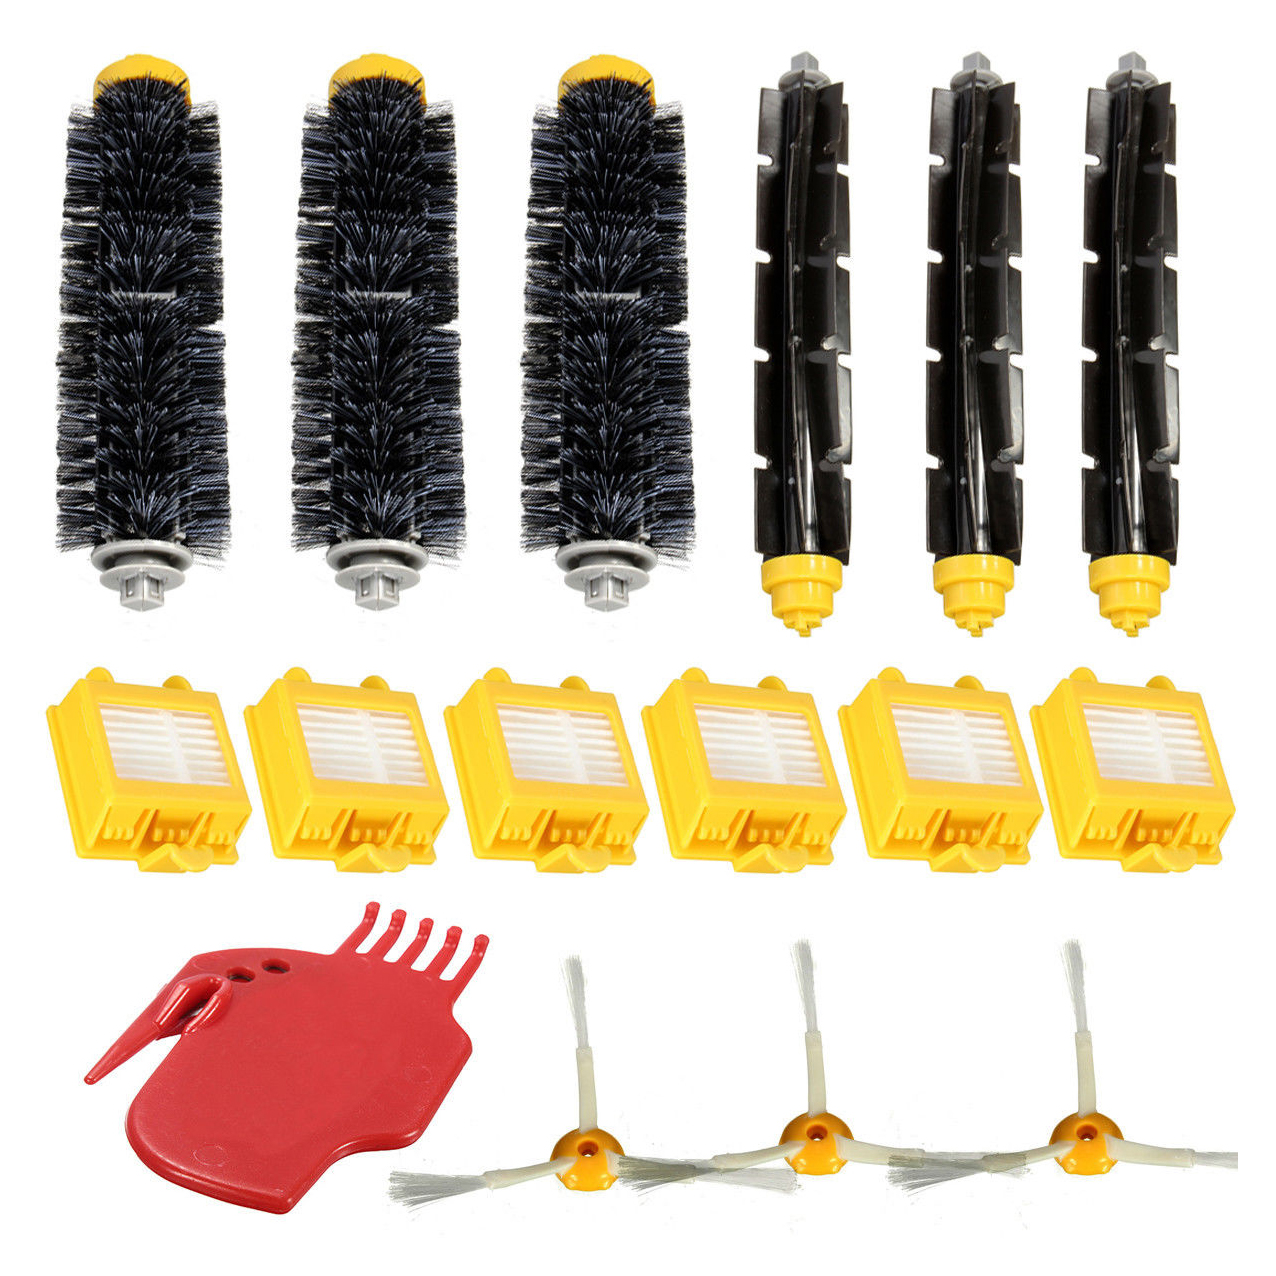 Filters Pack 3 Armed Side Brush Kit For iRobot Roomba Vacuum 700 760 770 780 vacuum cleaner accessory kit roomba 500 551 536 accessory kit replacement includes 1 battery 3 side brush 3 filters